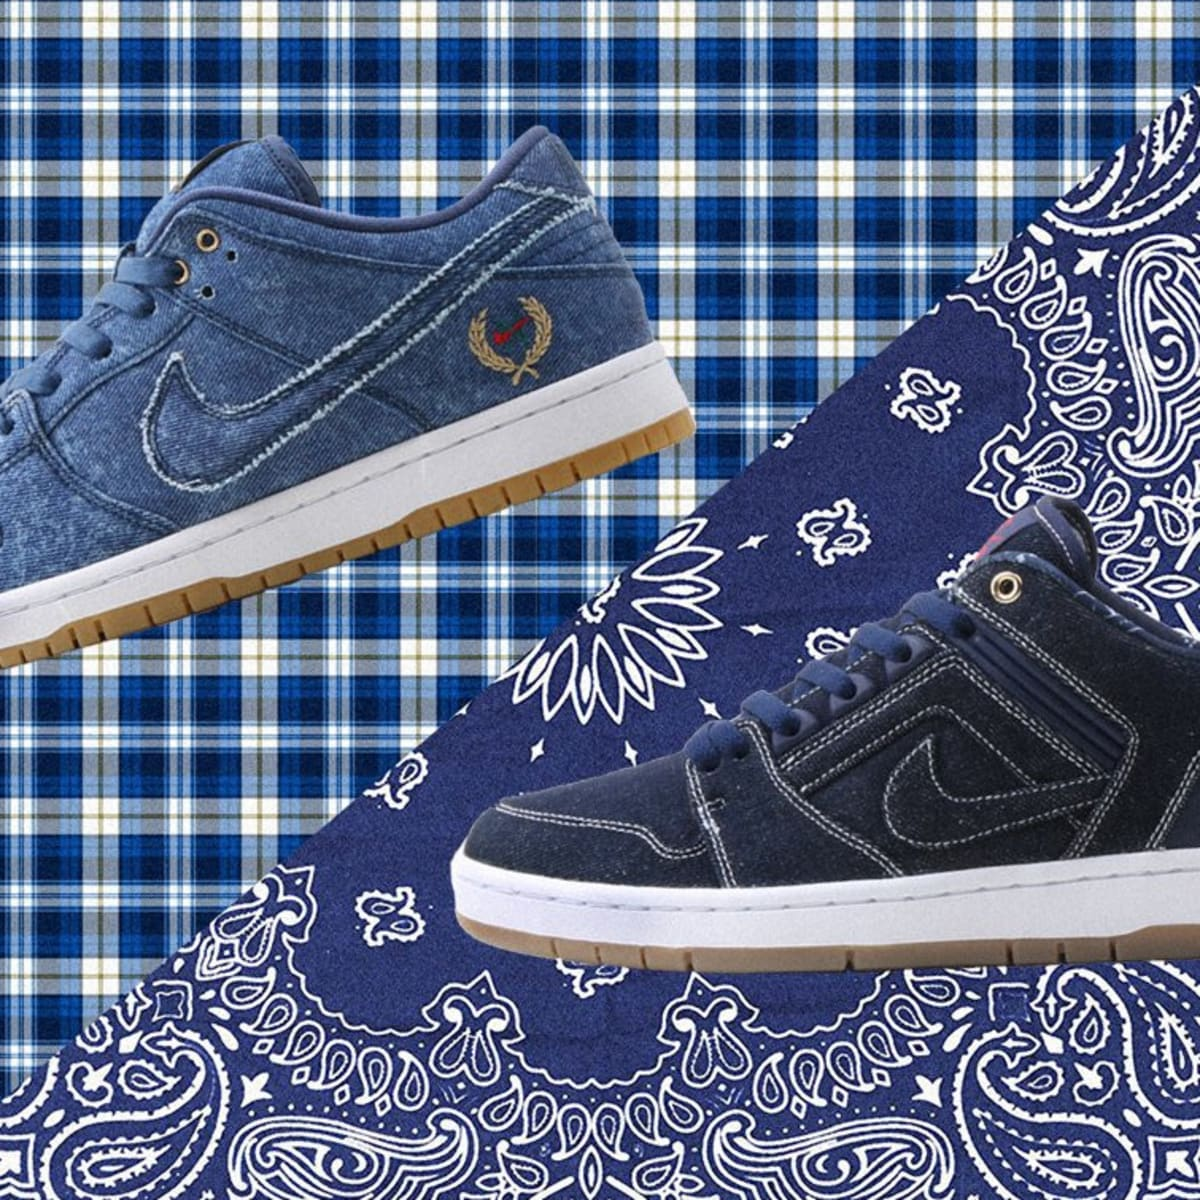 Nike SB's Denim Pack Is Hitting Select Retailers Now - Freshness Mag